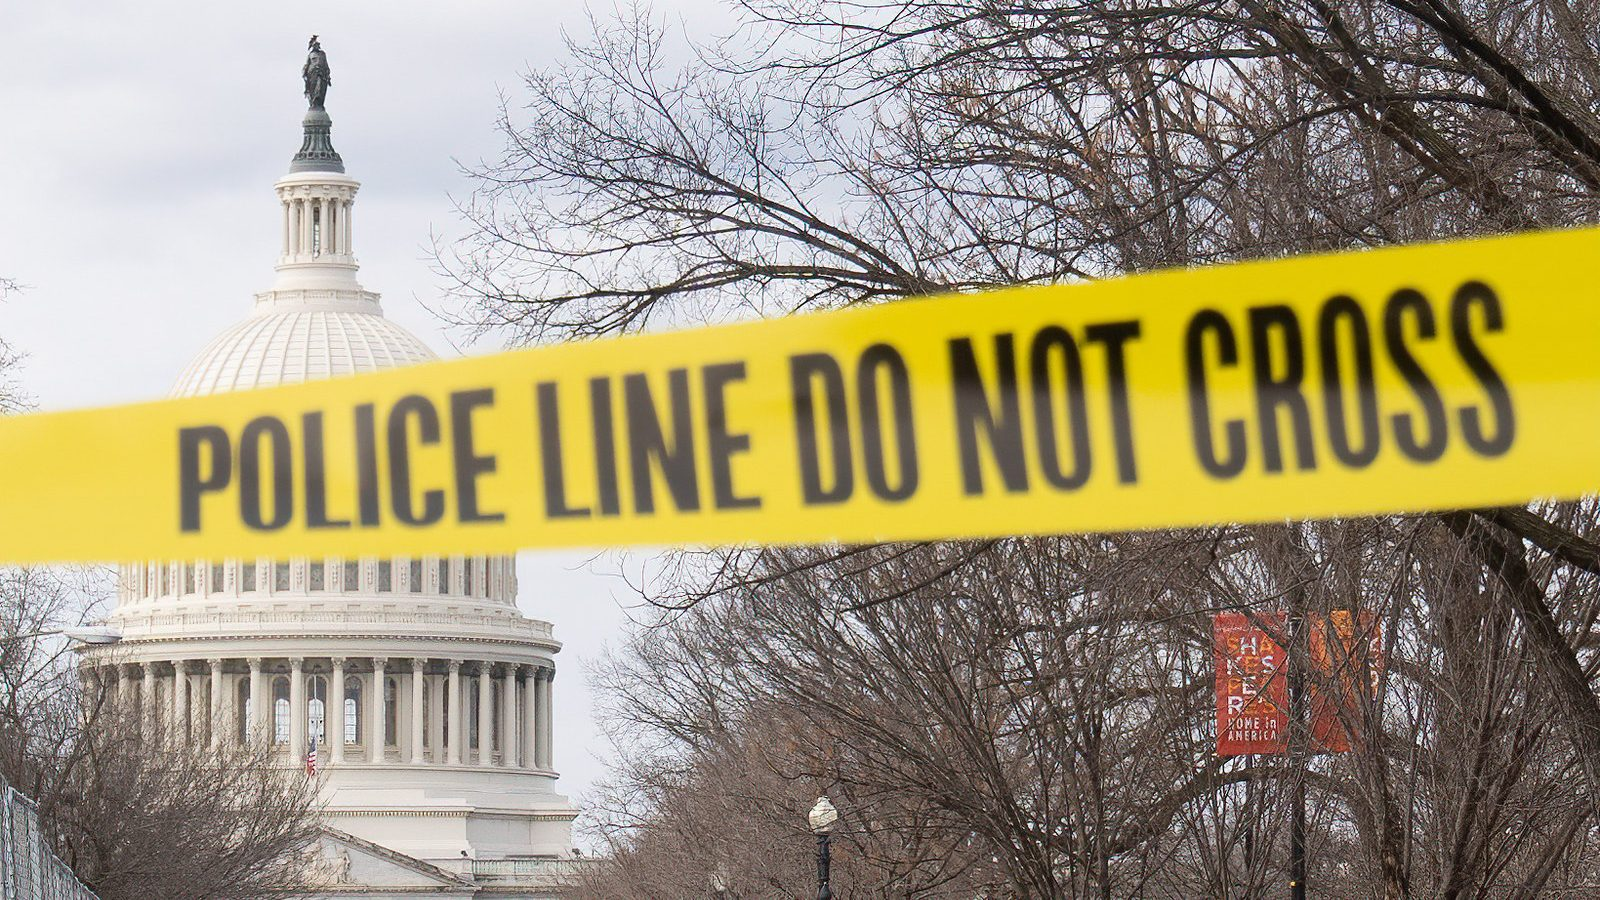 The Capitol Building is framed by a yellow police tape that reads